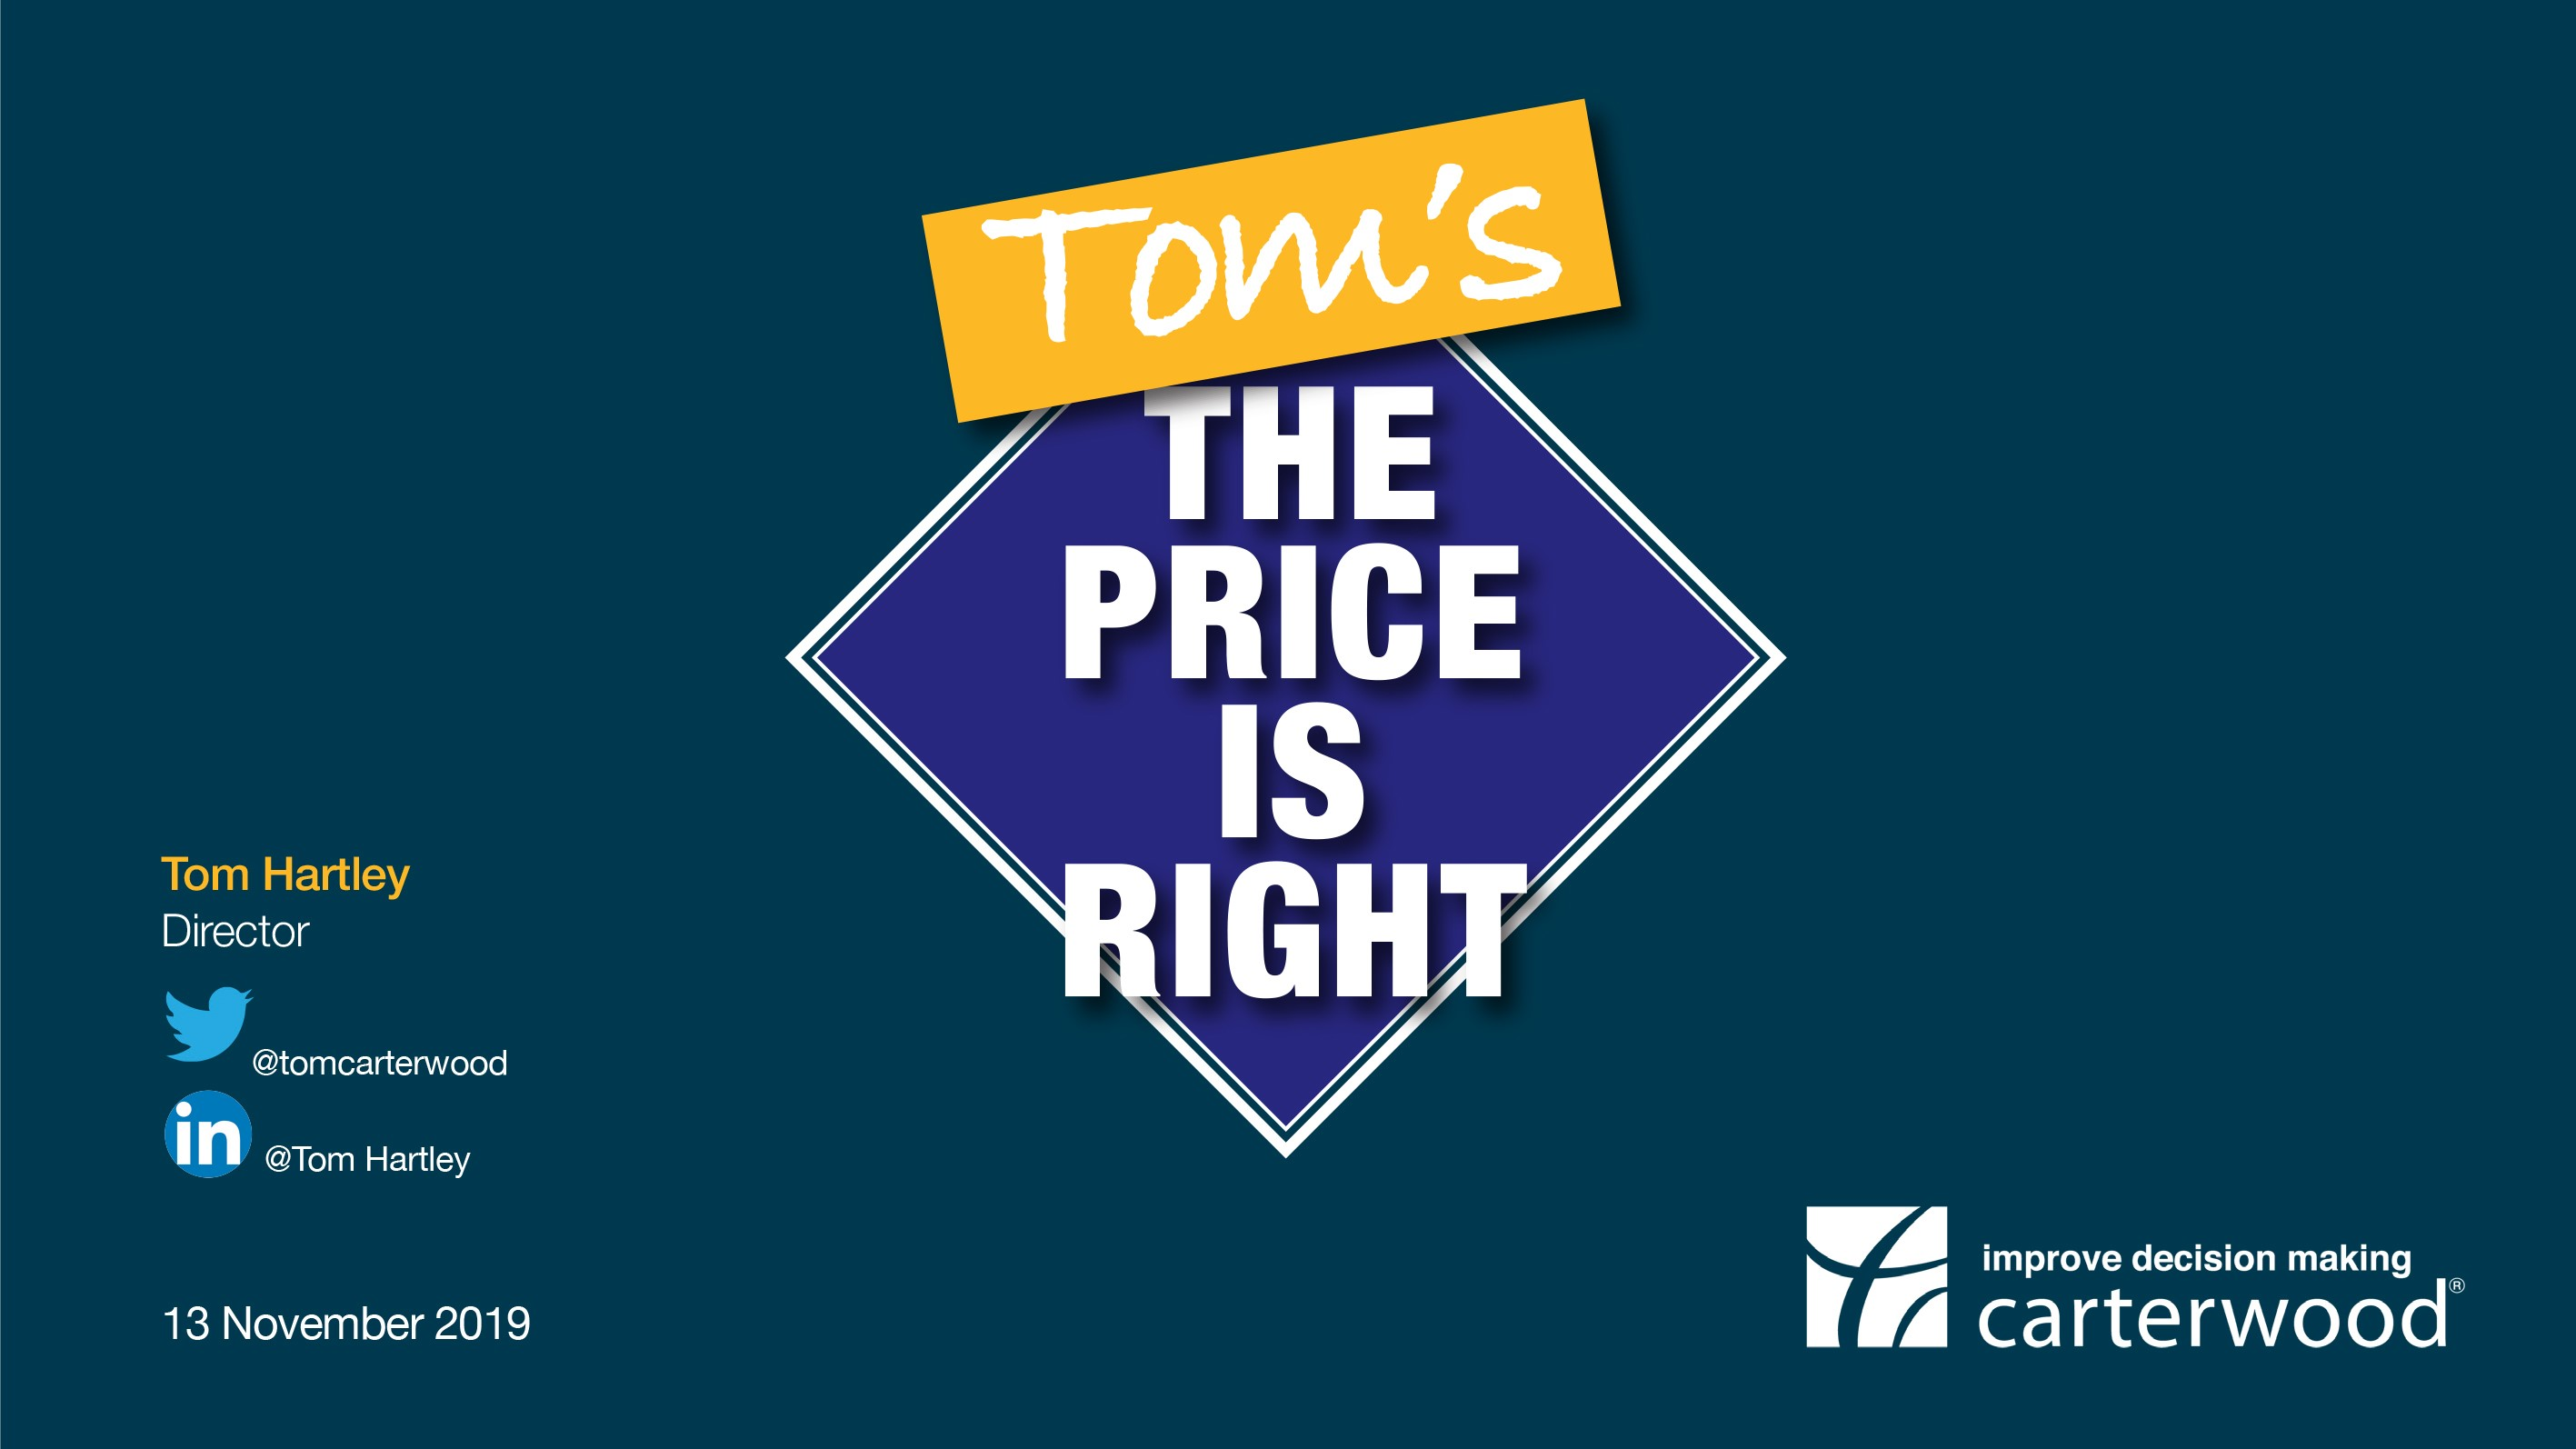 Carterwood's latest fee research – Find out more at 'Tom's The Price is Right' workshop at Care England's Workforce Matters Conference